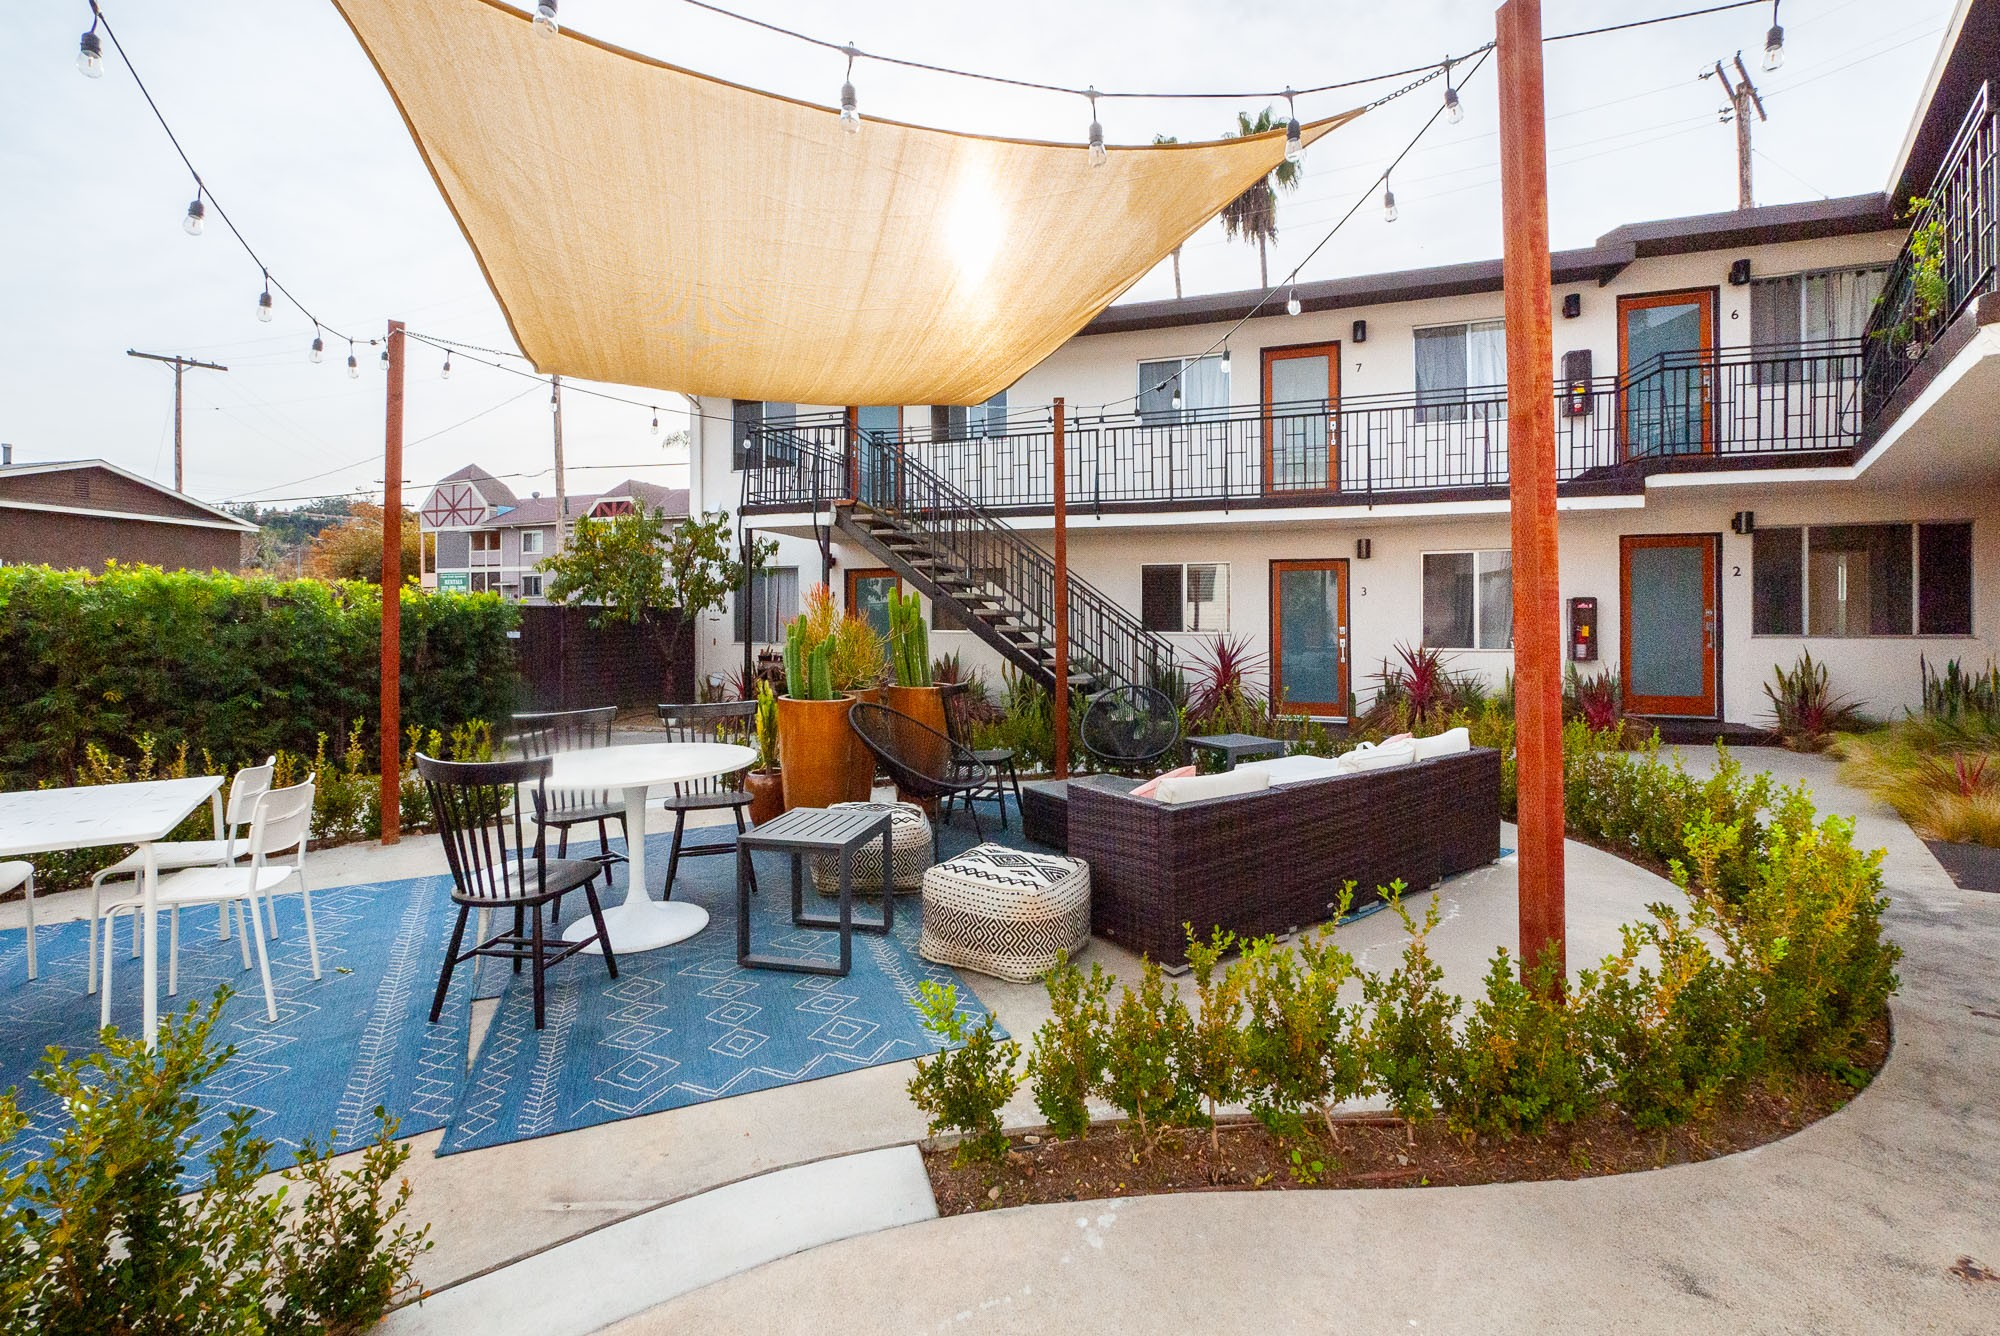 Move-In Special! | Bright Highland Park 1 Bed/ 1 Bath W/ Parking! |   Recently Updated|Stylish Outdoor Courtyard| Prime Location|